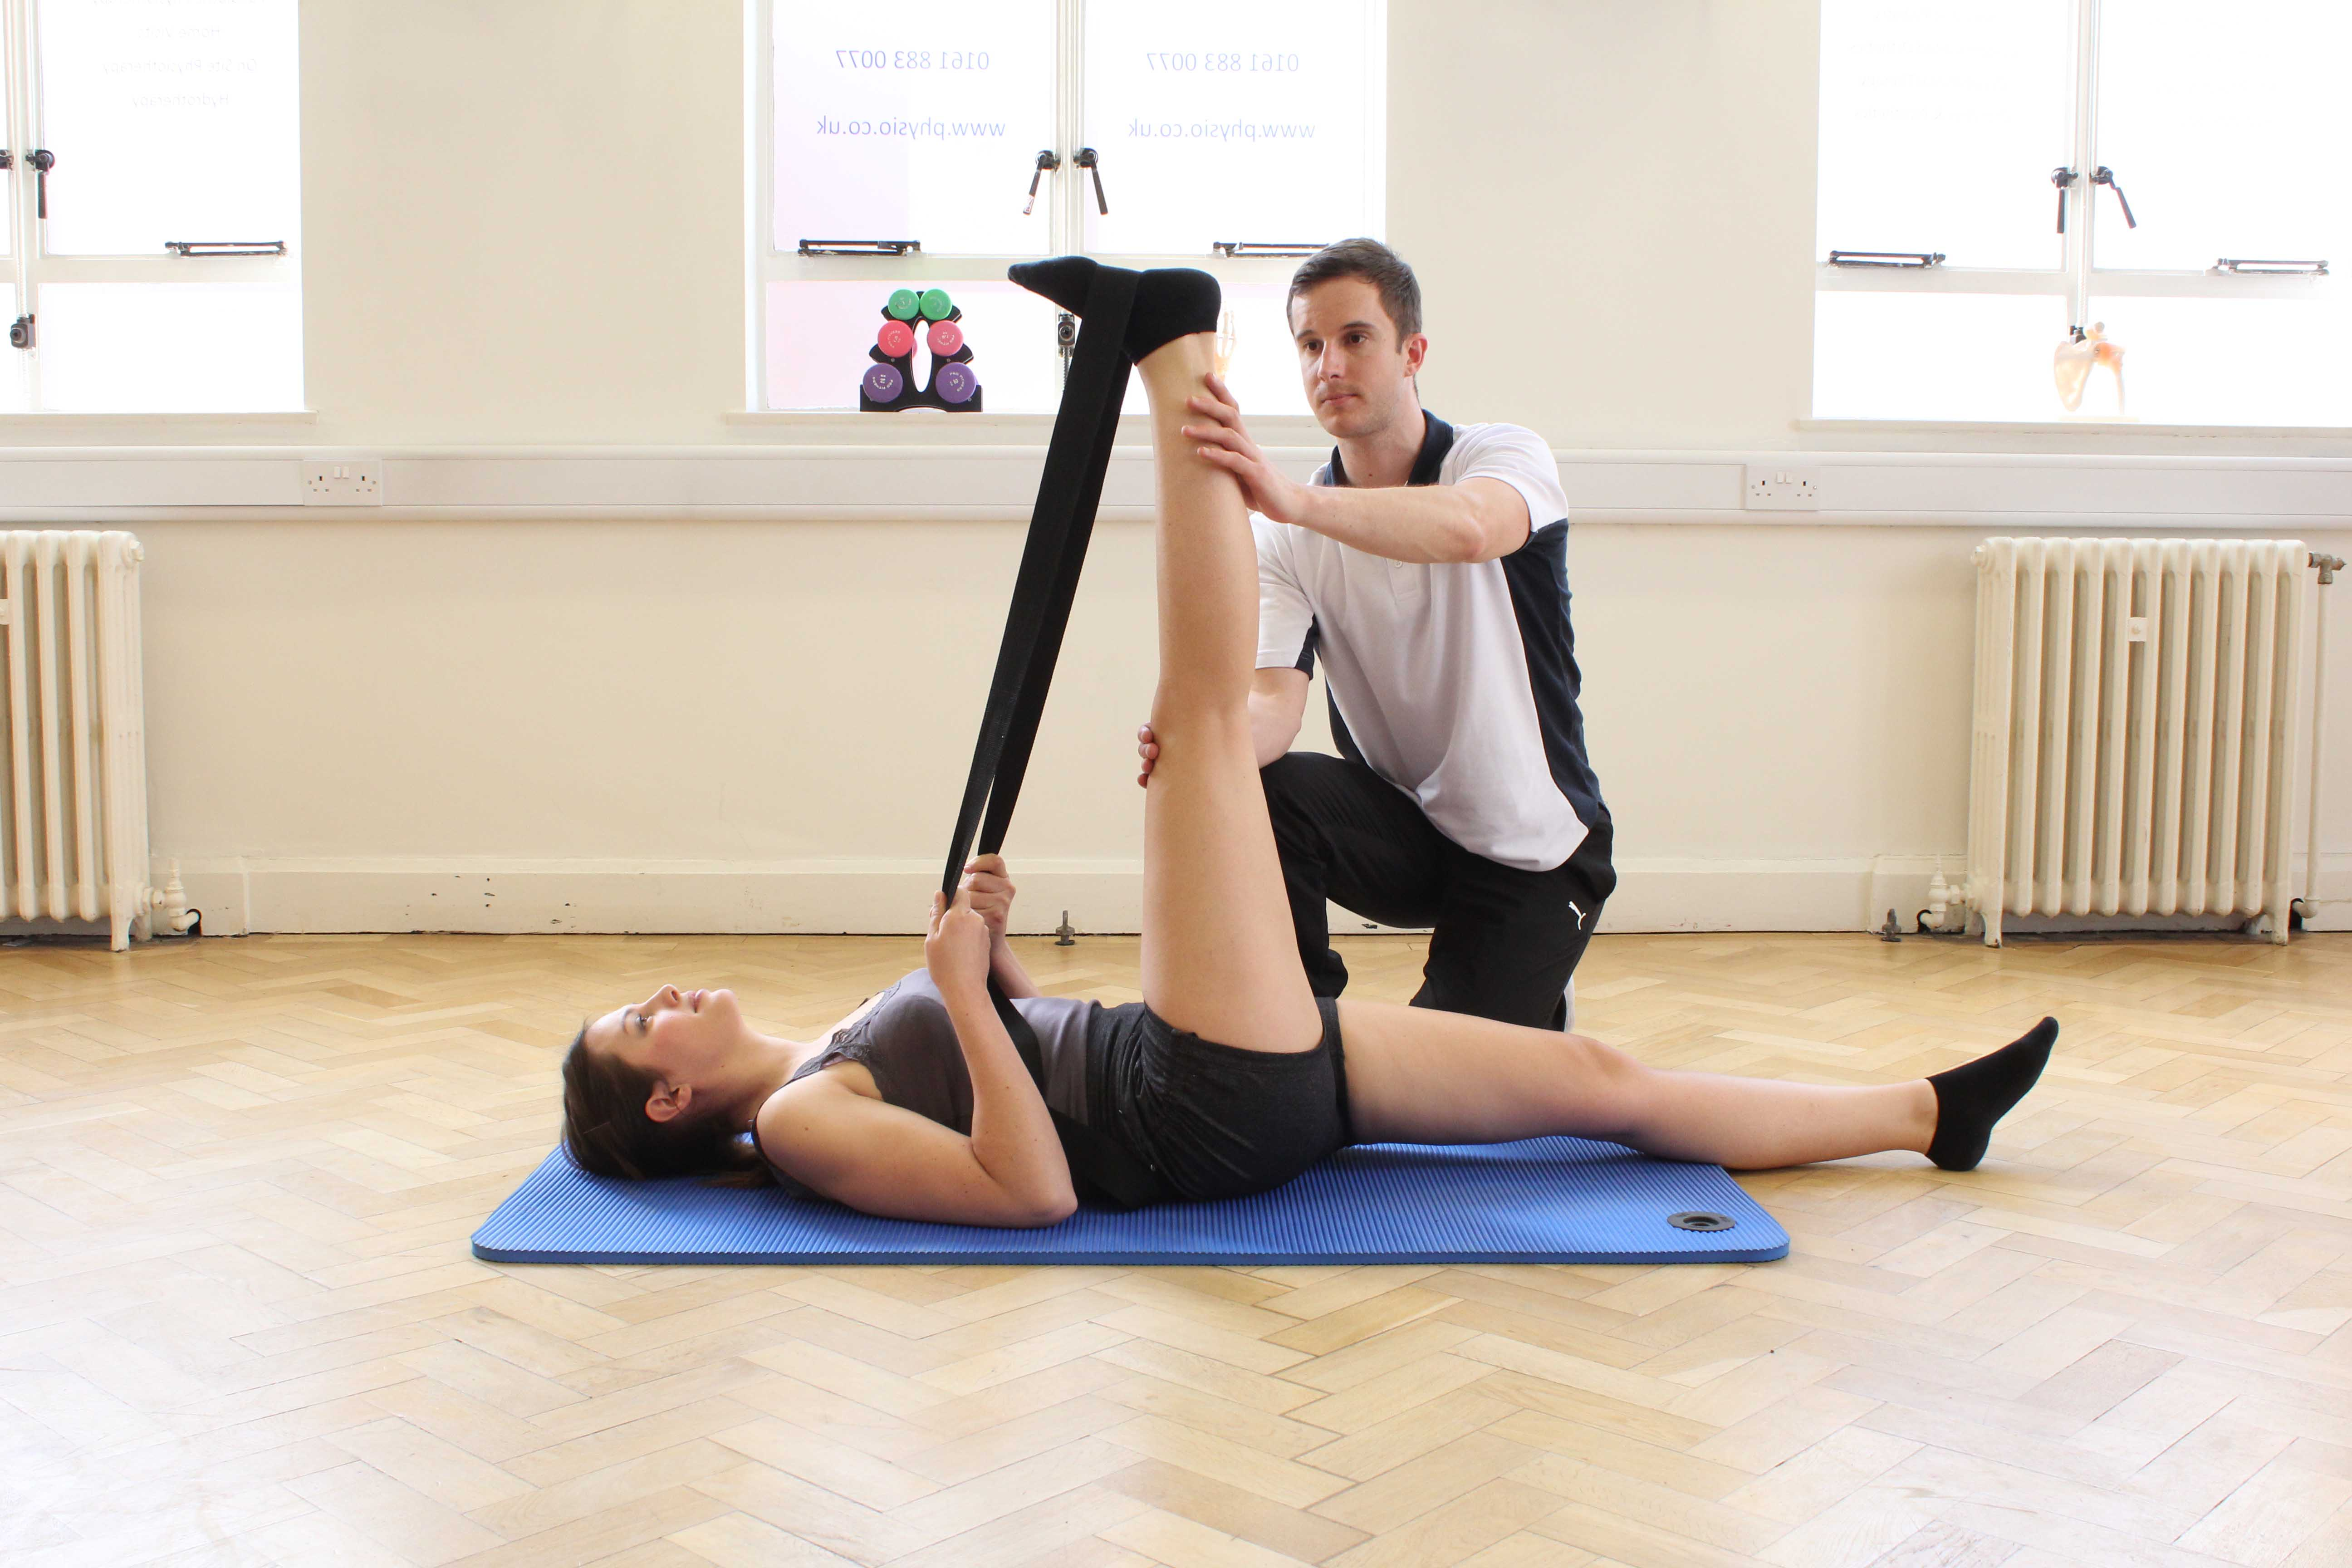 Stretches to the achilles using a strap with supervision from a physiotherapist